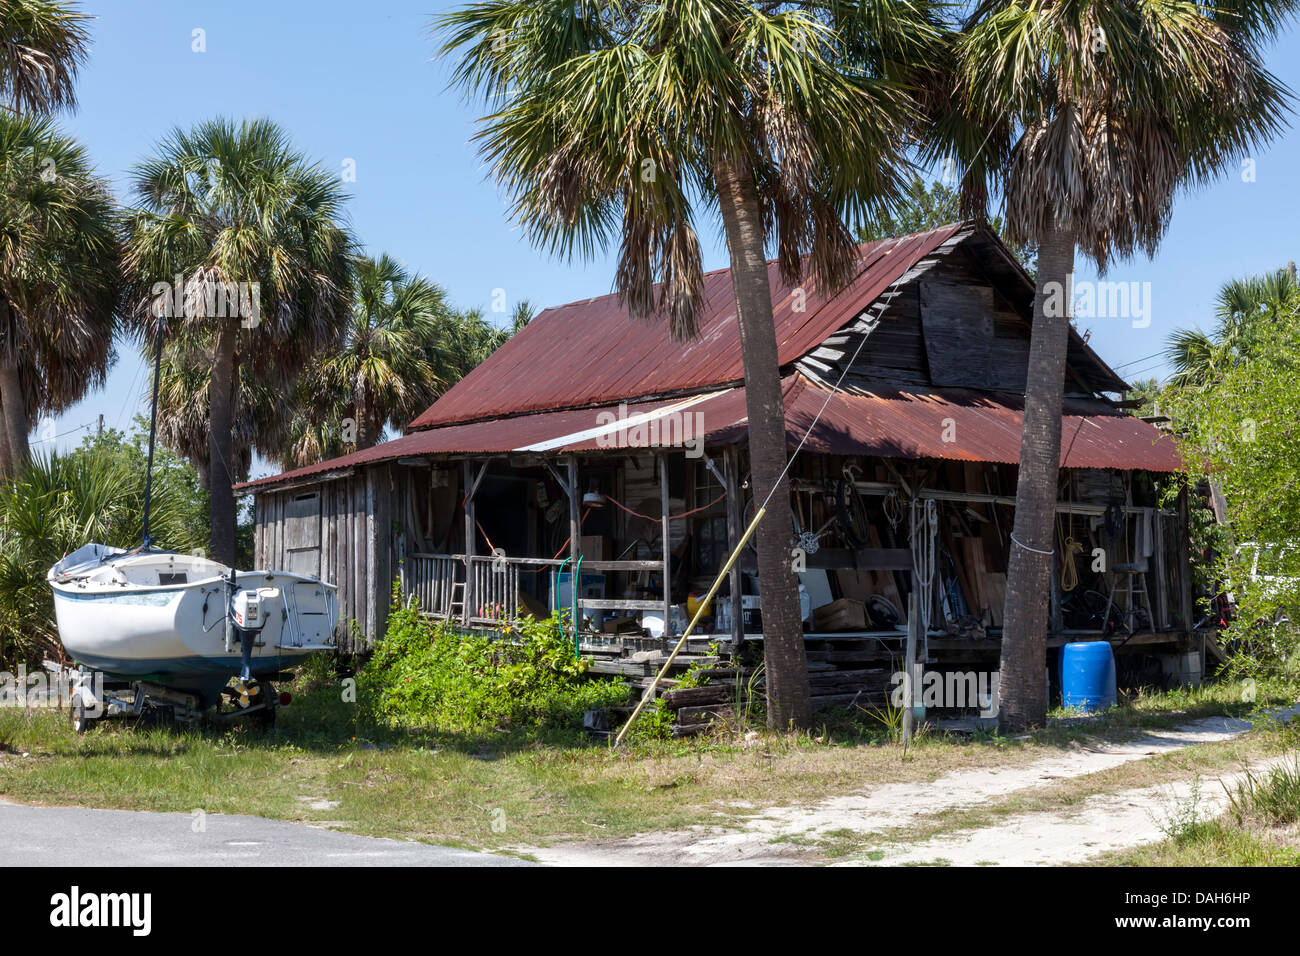 An old rundown wood frame house with rusting metal roof . A sailboat ...